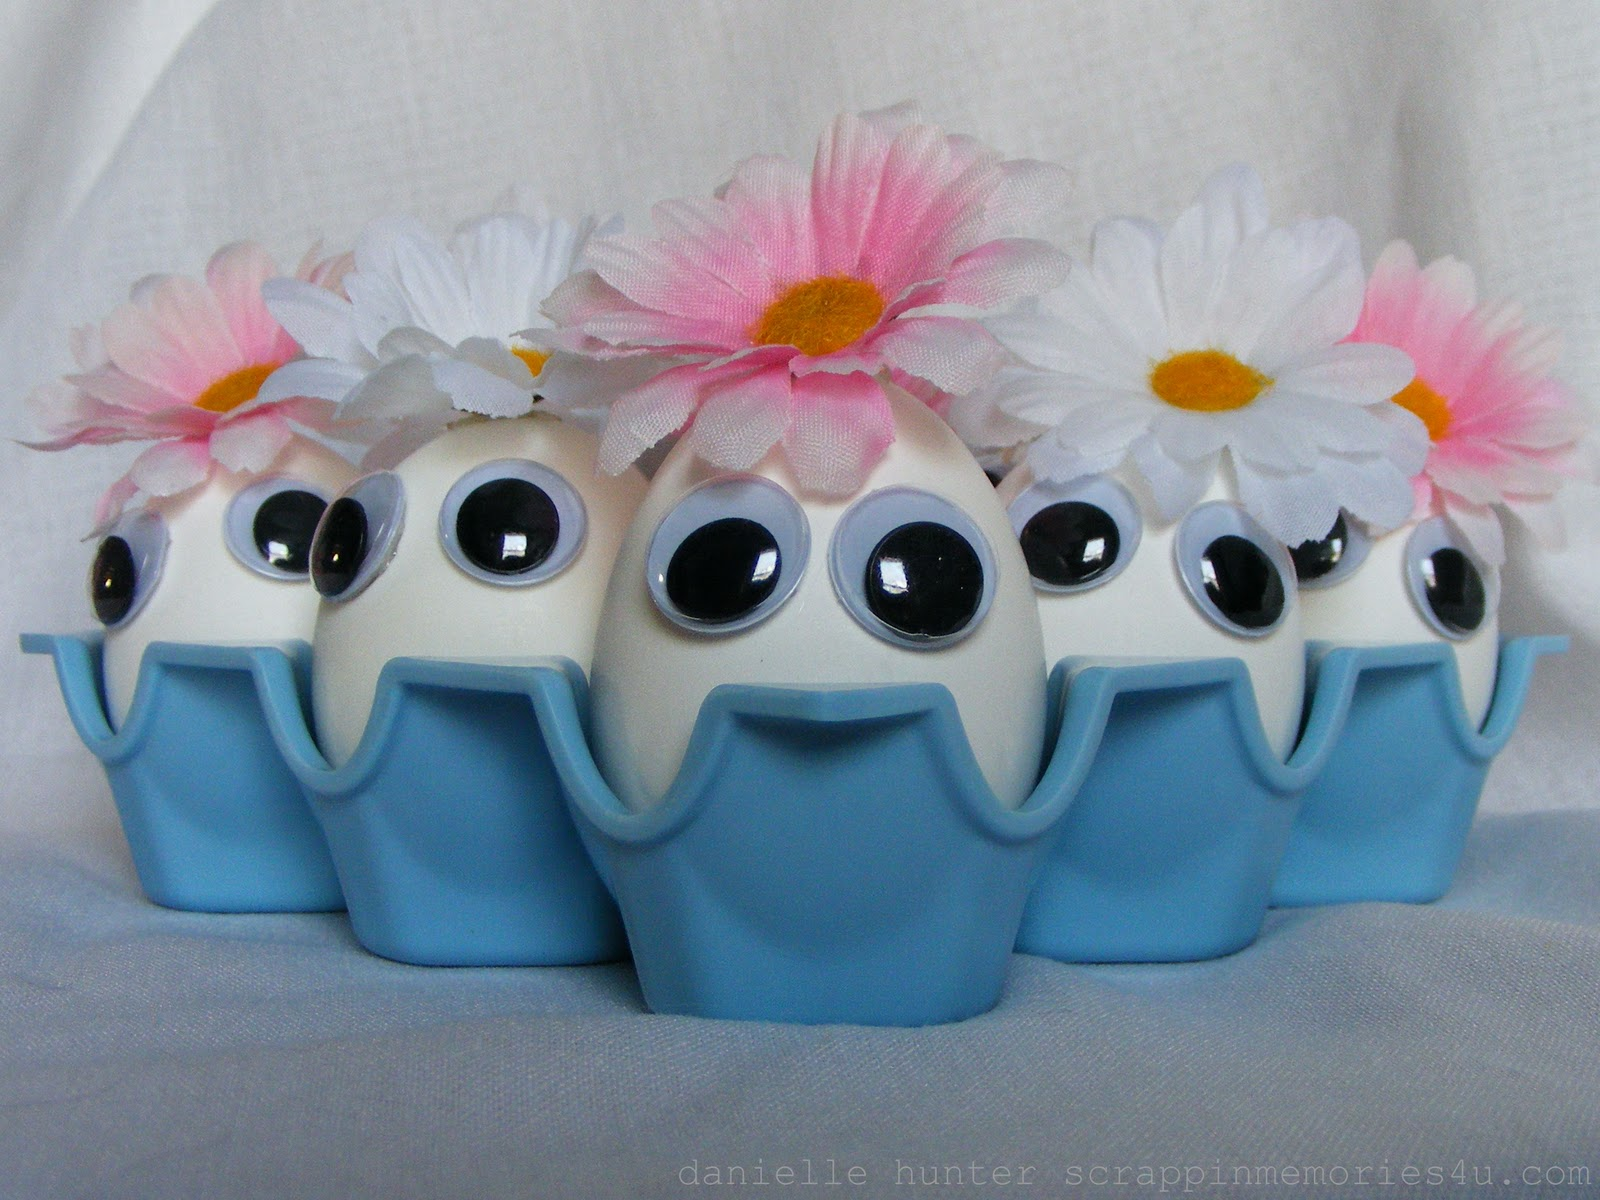 Snap scrap blog tweet decorating easter eggs with googly eyes for Craft masks to decorate